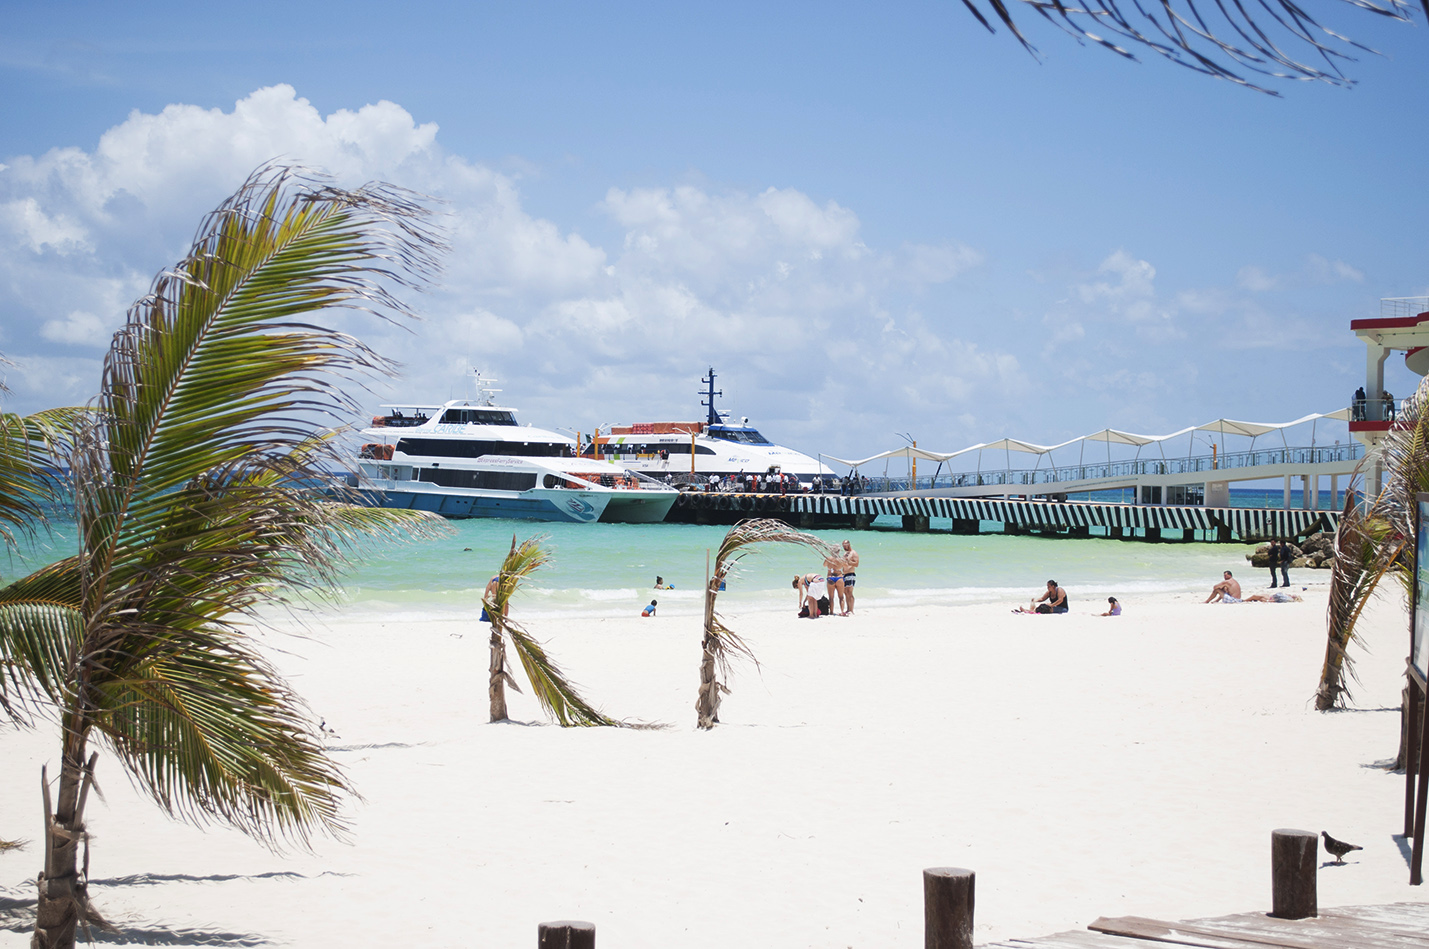 Where to take the ferry to Cozumel in Playa del Carmen?